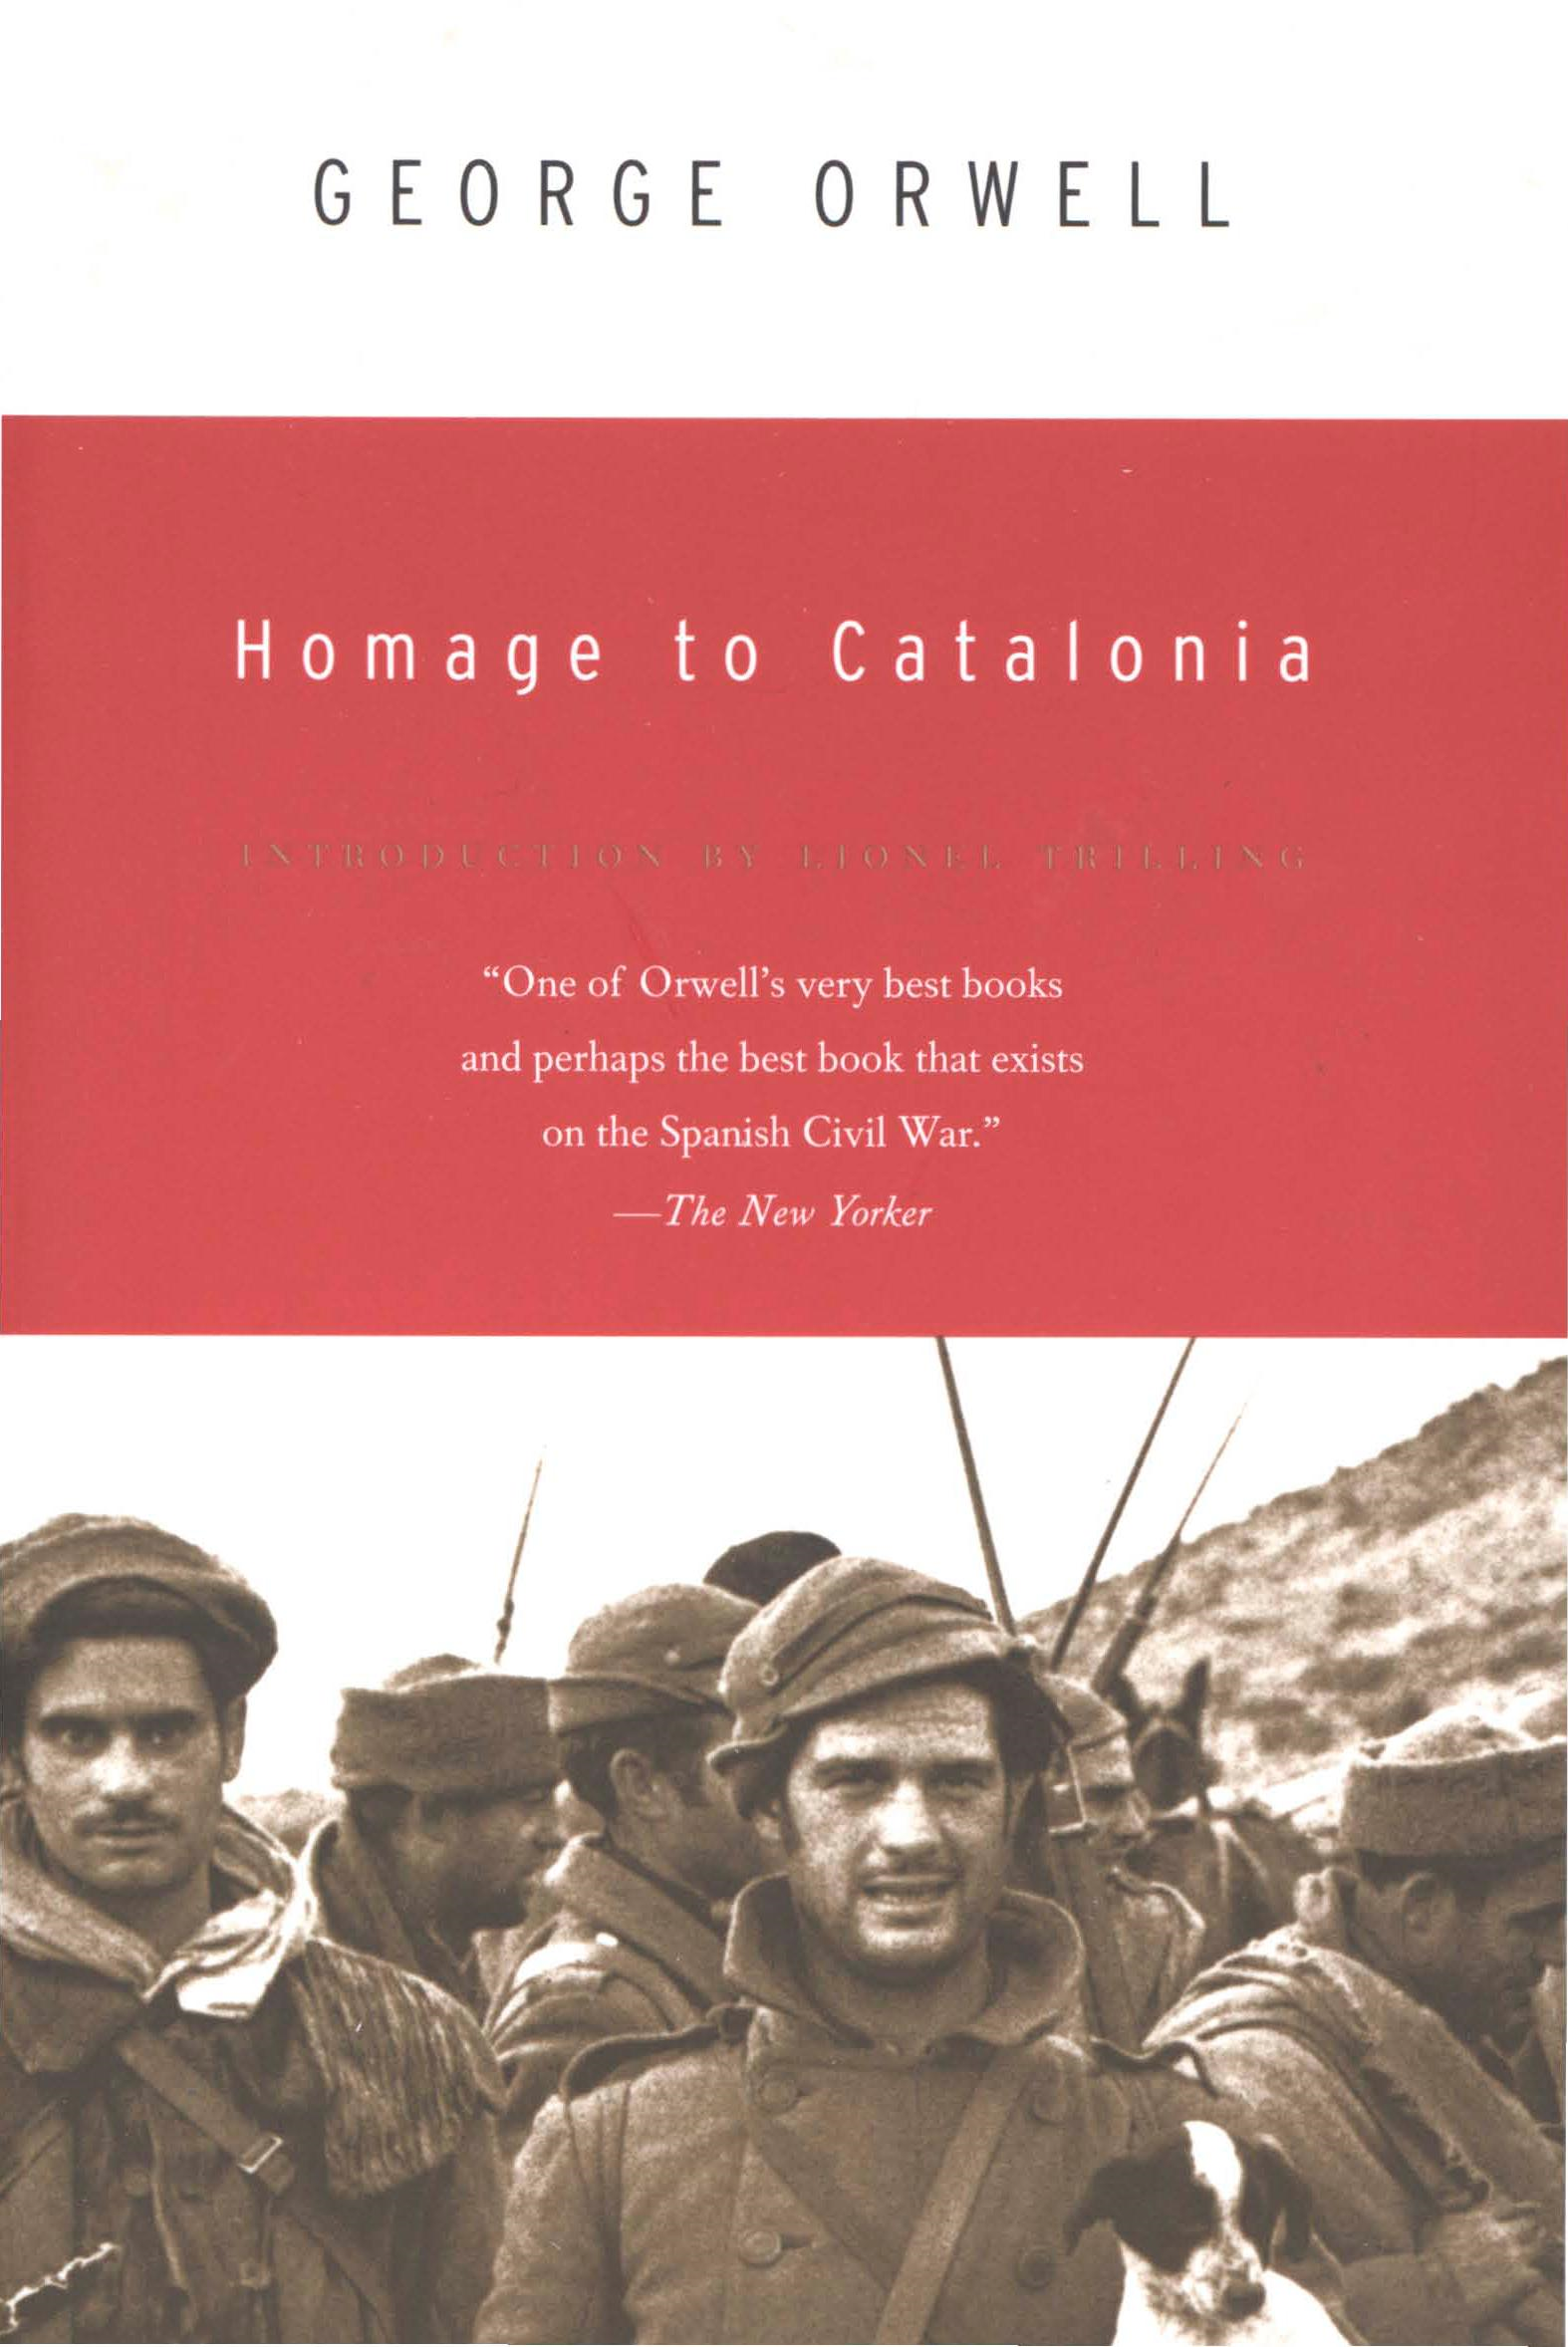 Homage to Catalonia By: George Orwell